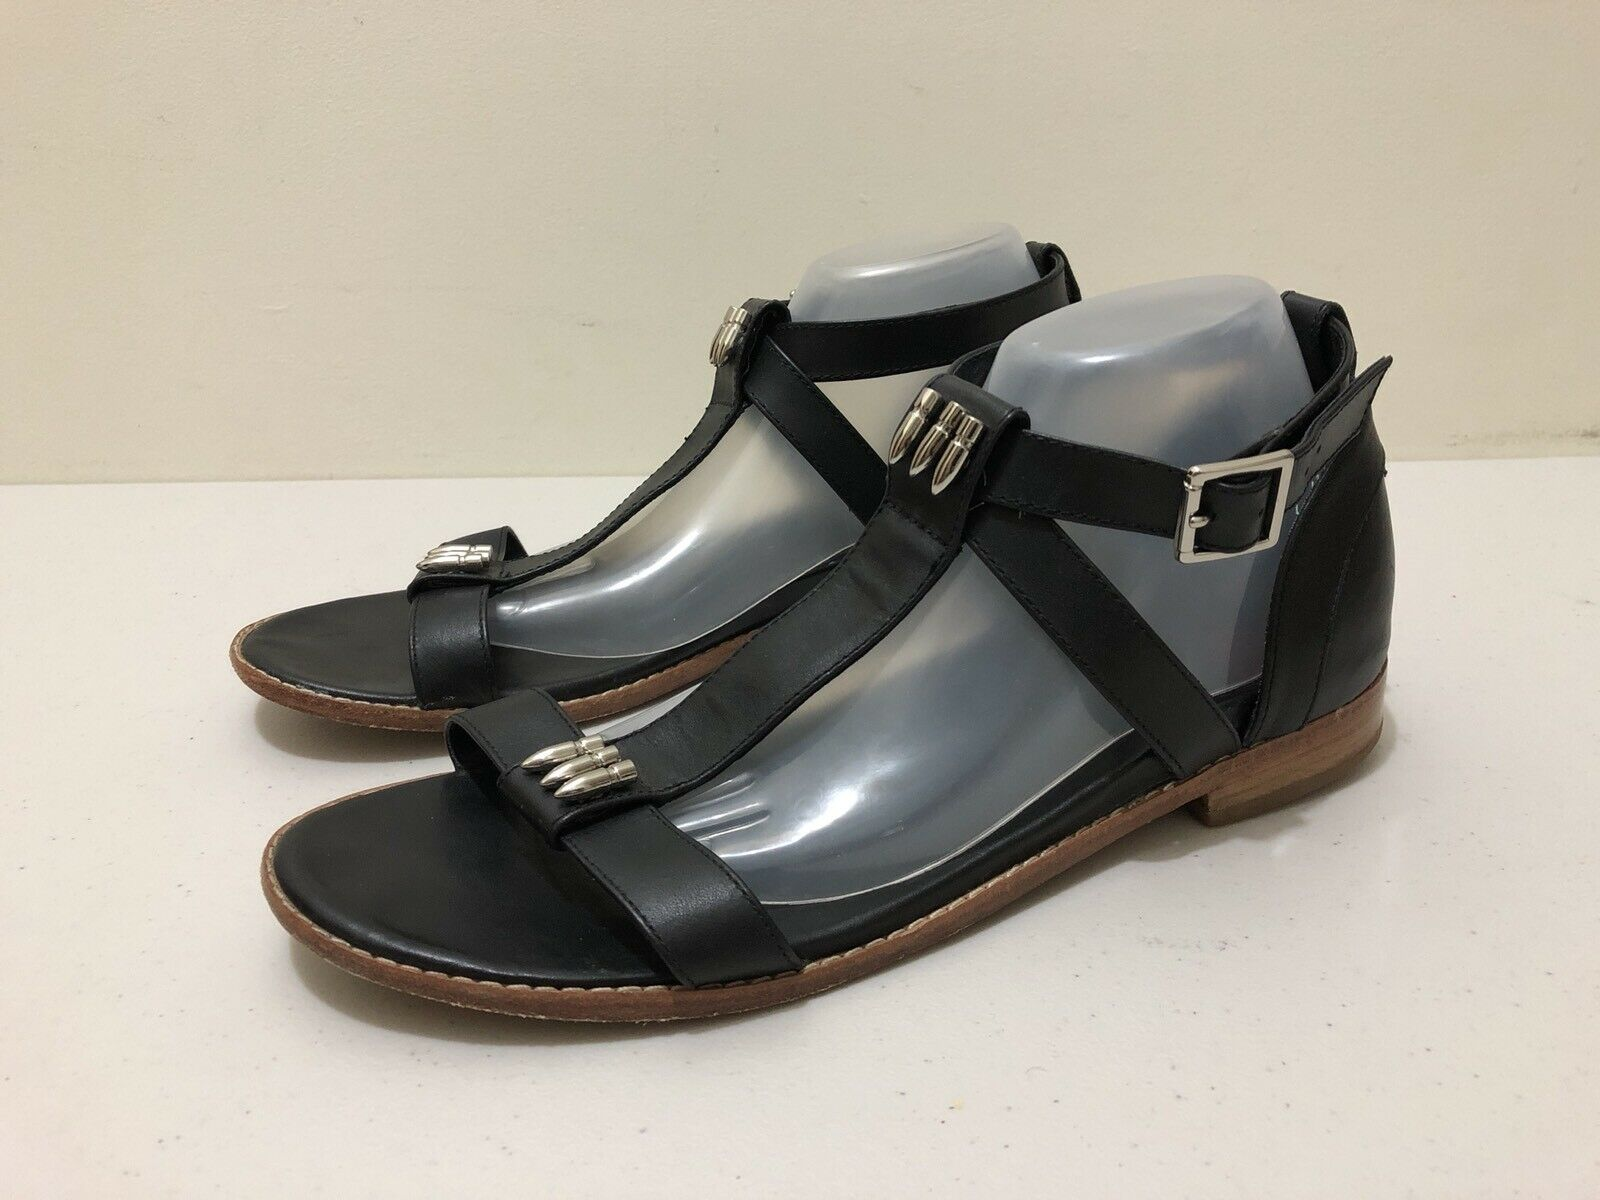 Barosso Sandals donna  Dimensione 43  Great Cond Leather Leather Leather   T Bar   Style Design nero d35c04